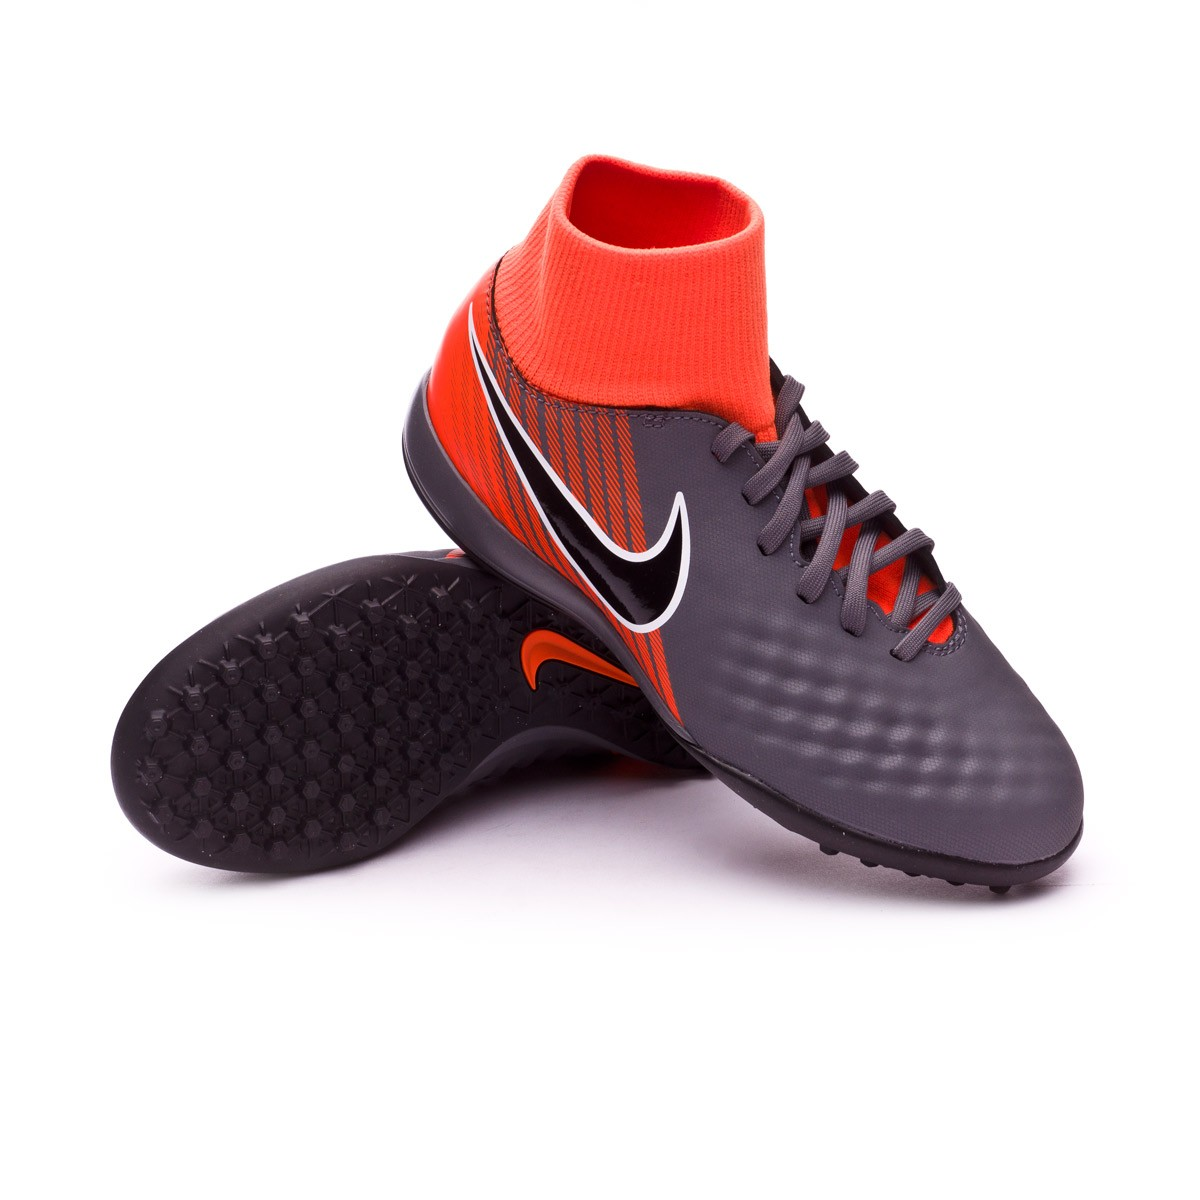 12ab3ec74aa Nike Kids Magista ObraX II Academy DF Turf Football Boot. Dark grey-Black-Total  orange-White ...